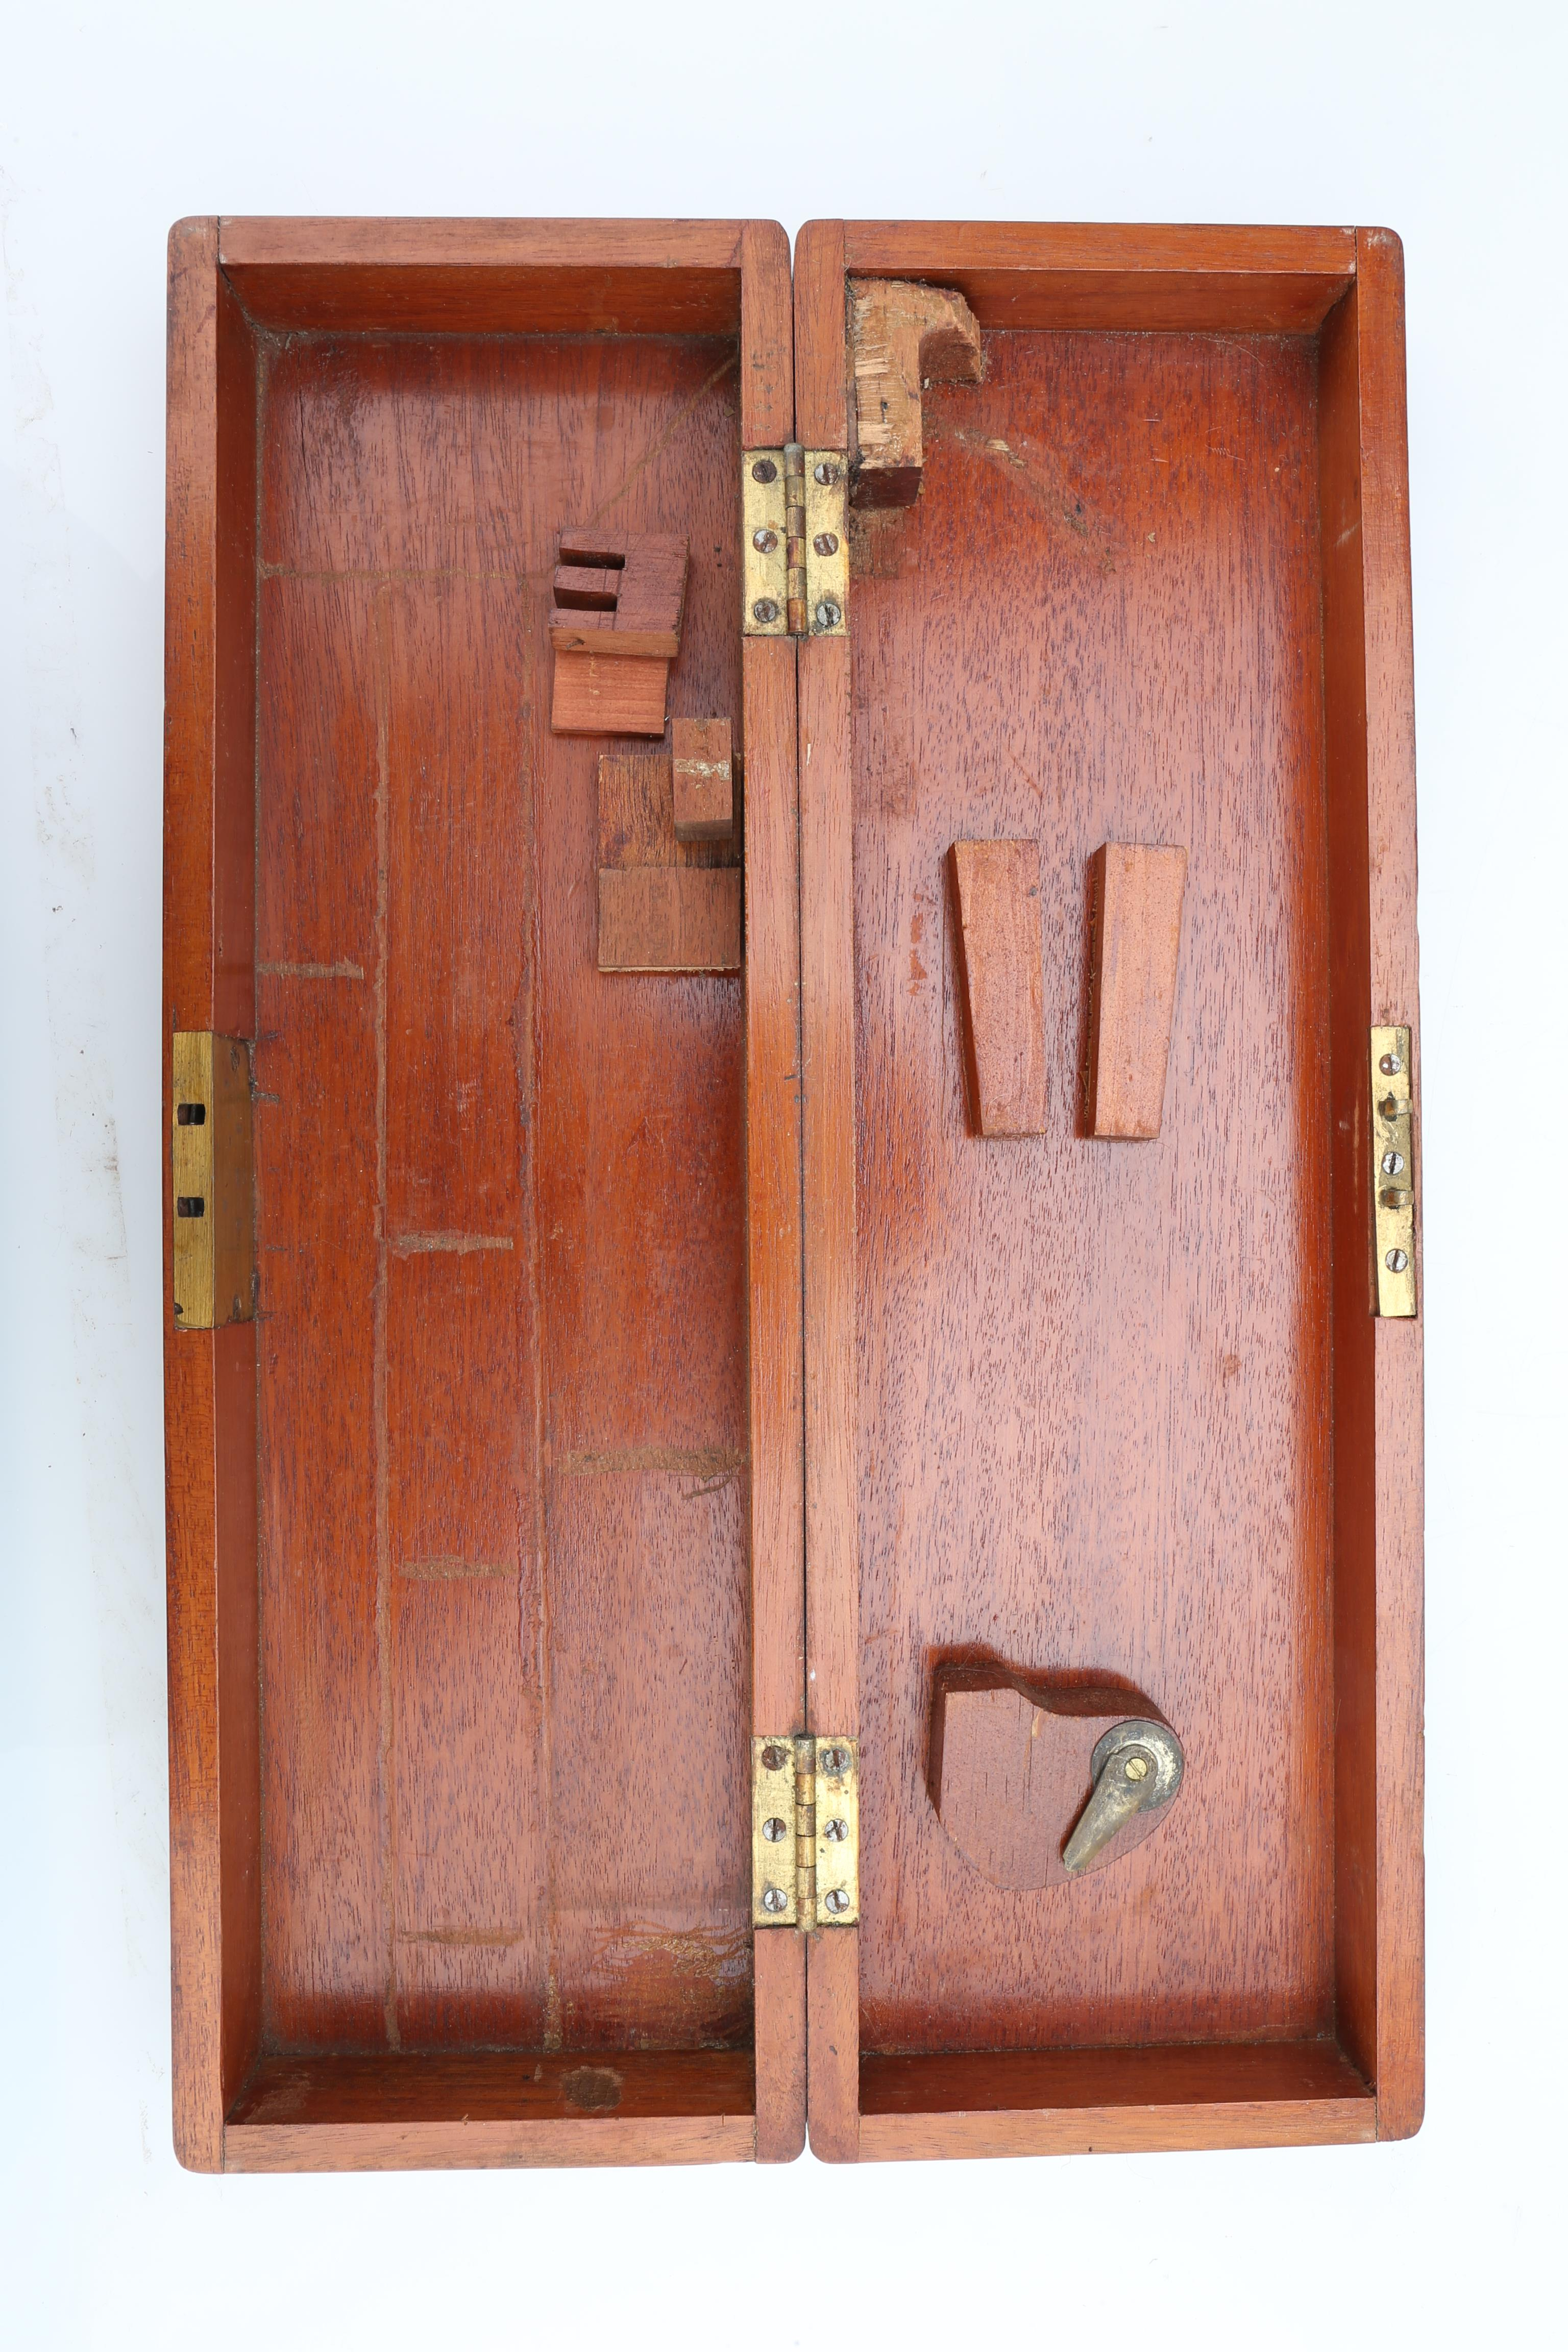 Antique Surgical Instrument Cases, - Image 4 of 5